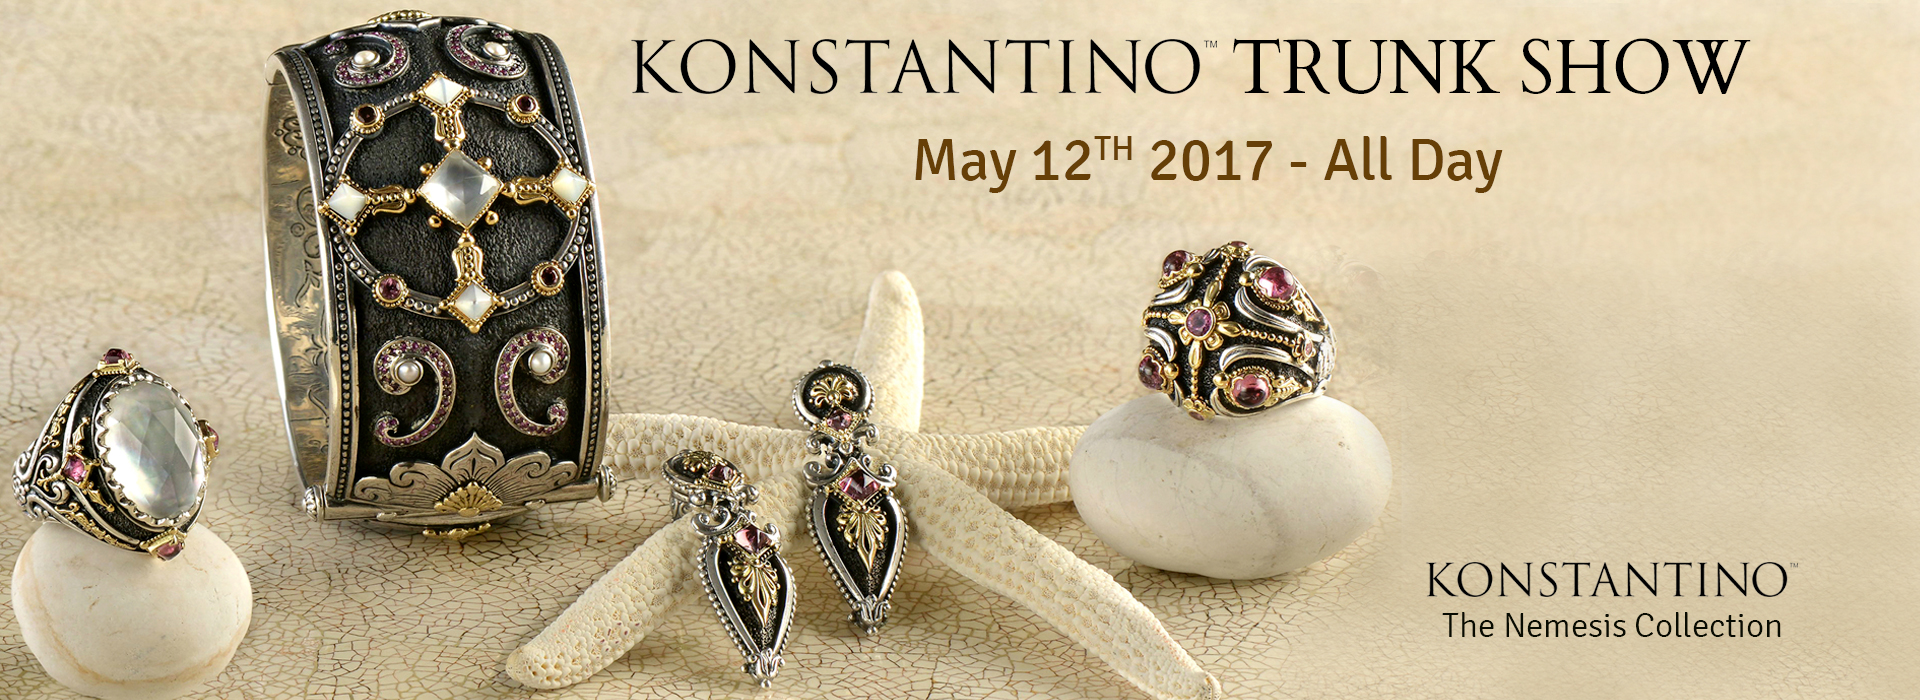 Konstantino Trunk Show! One Day Only Event